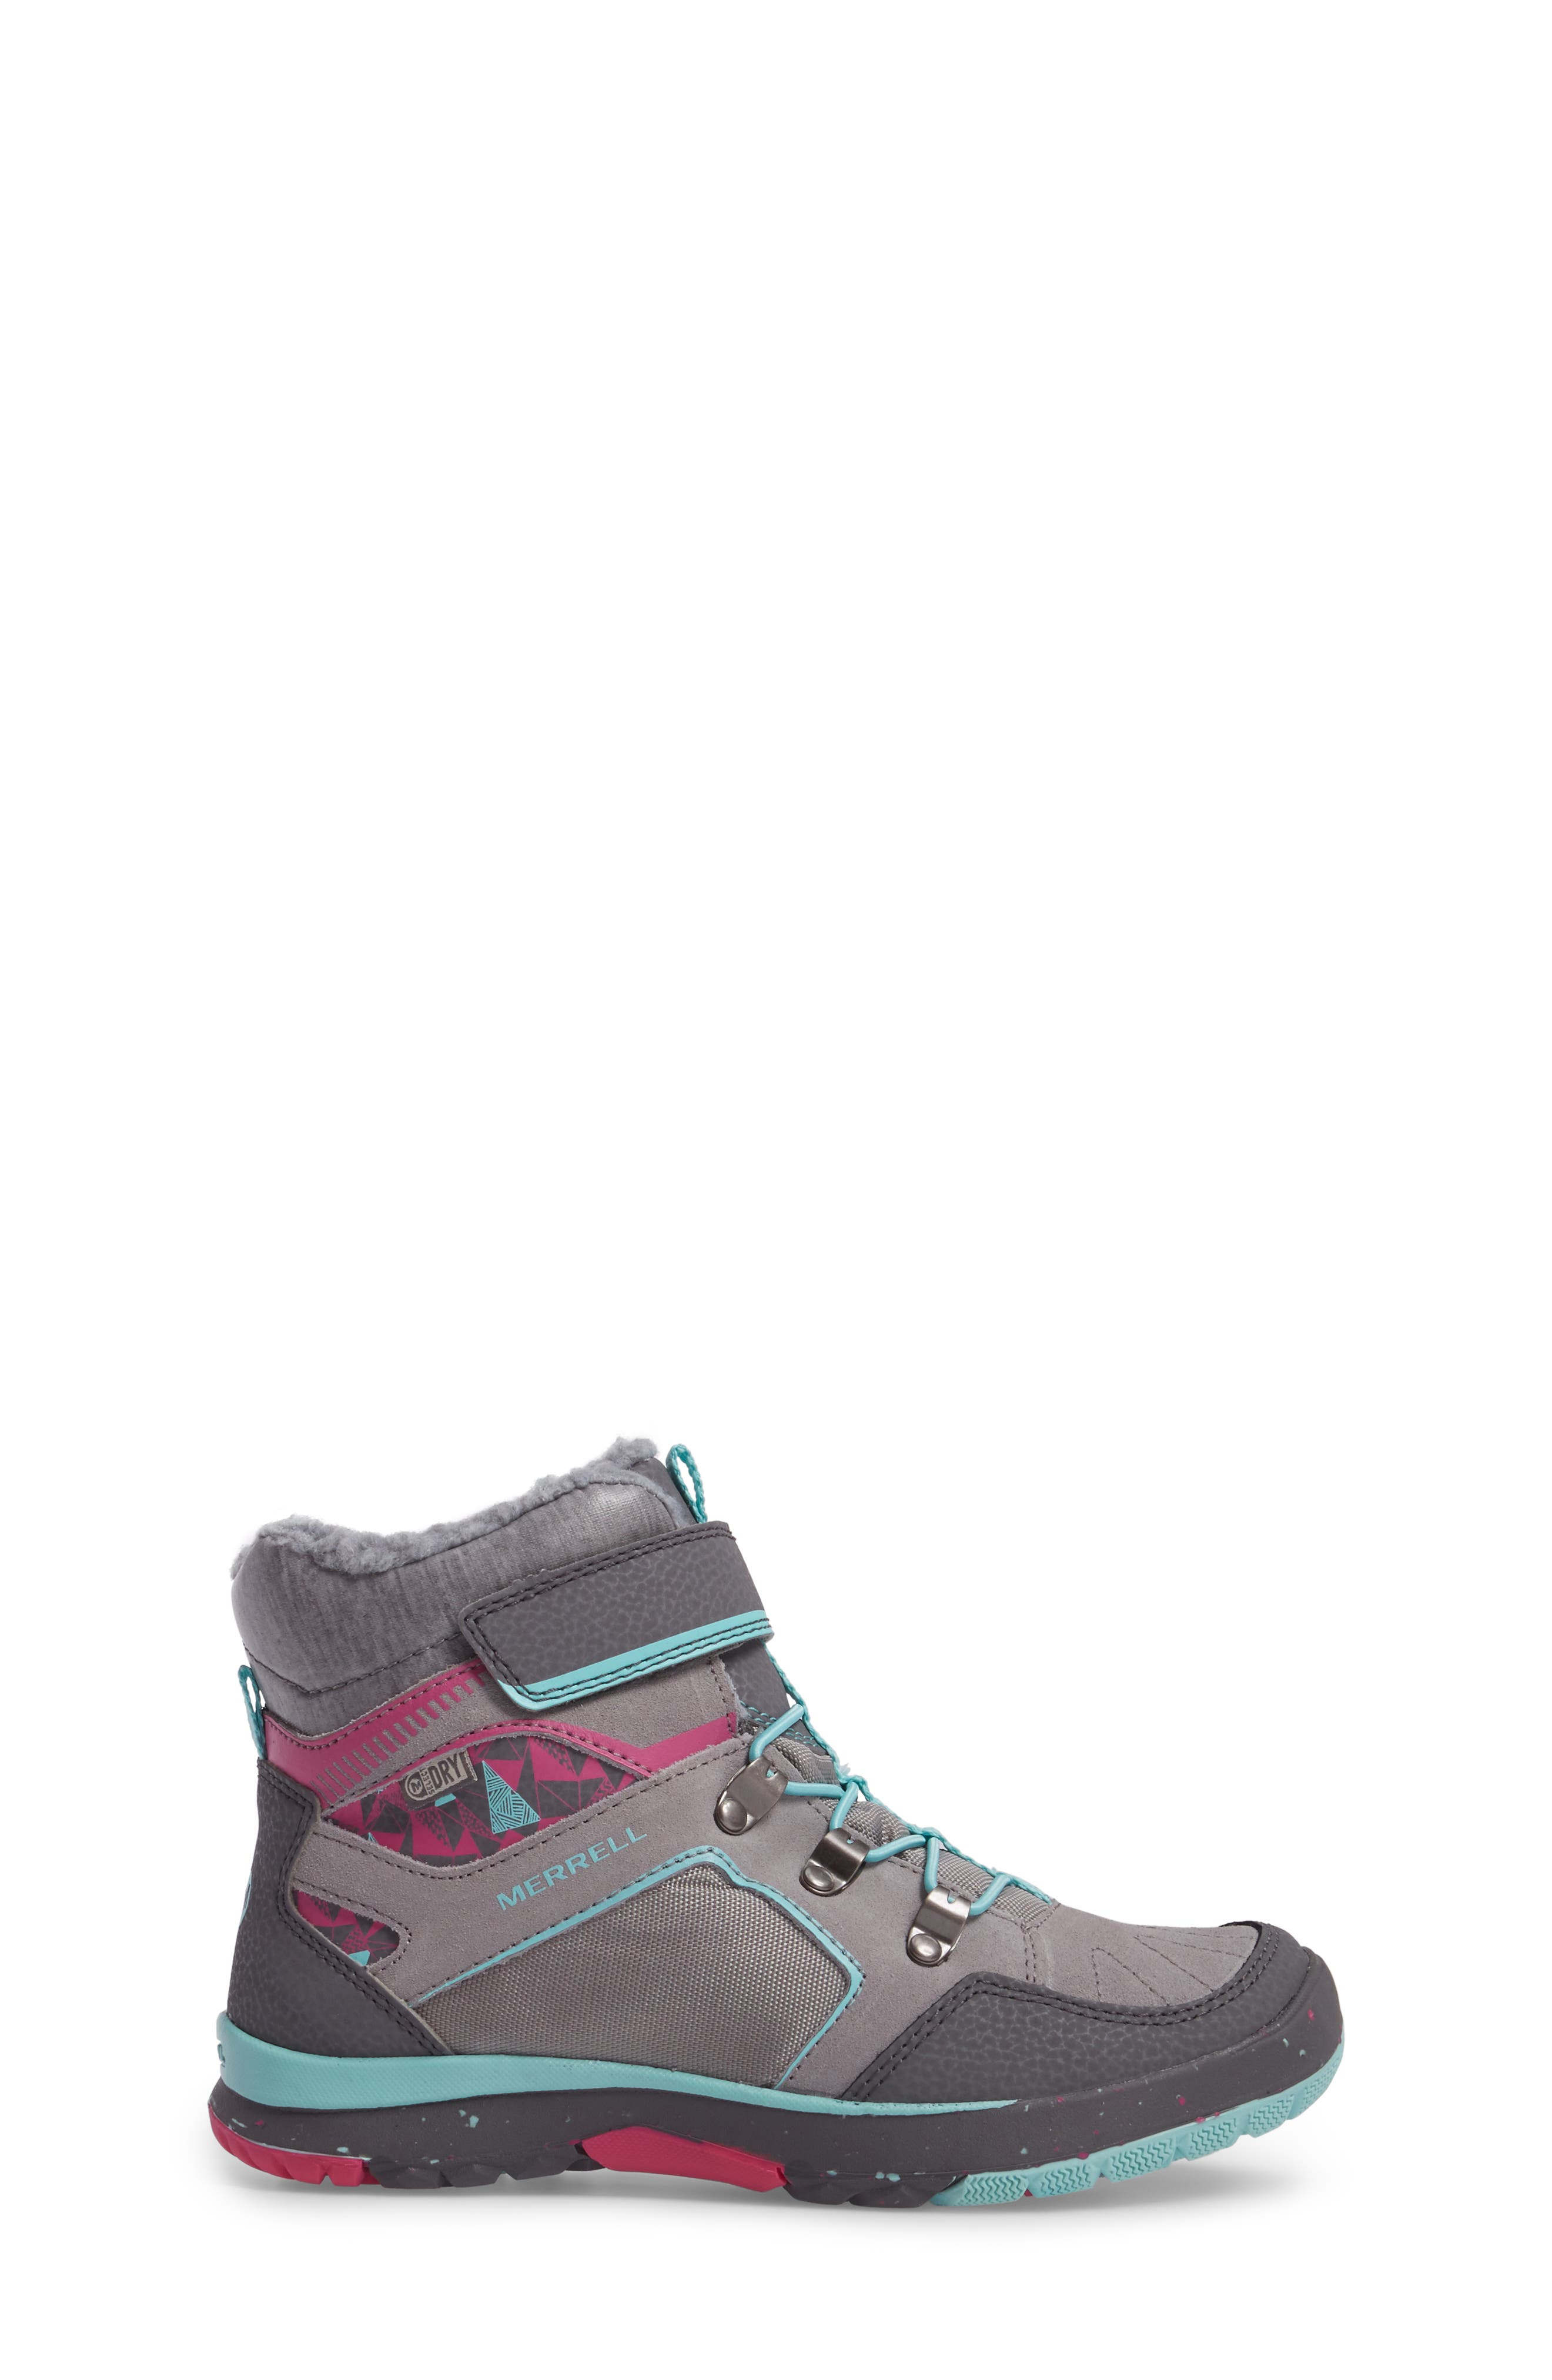 Moab FST Polar Mid Waterproof Insulated Sneaker Boot,                             Alternate thumbnail 3, color,                             Grey/ Multi